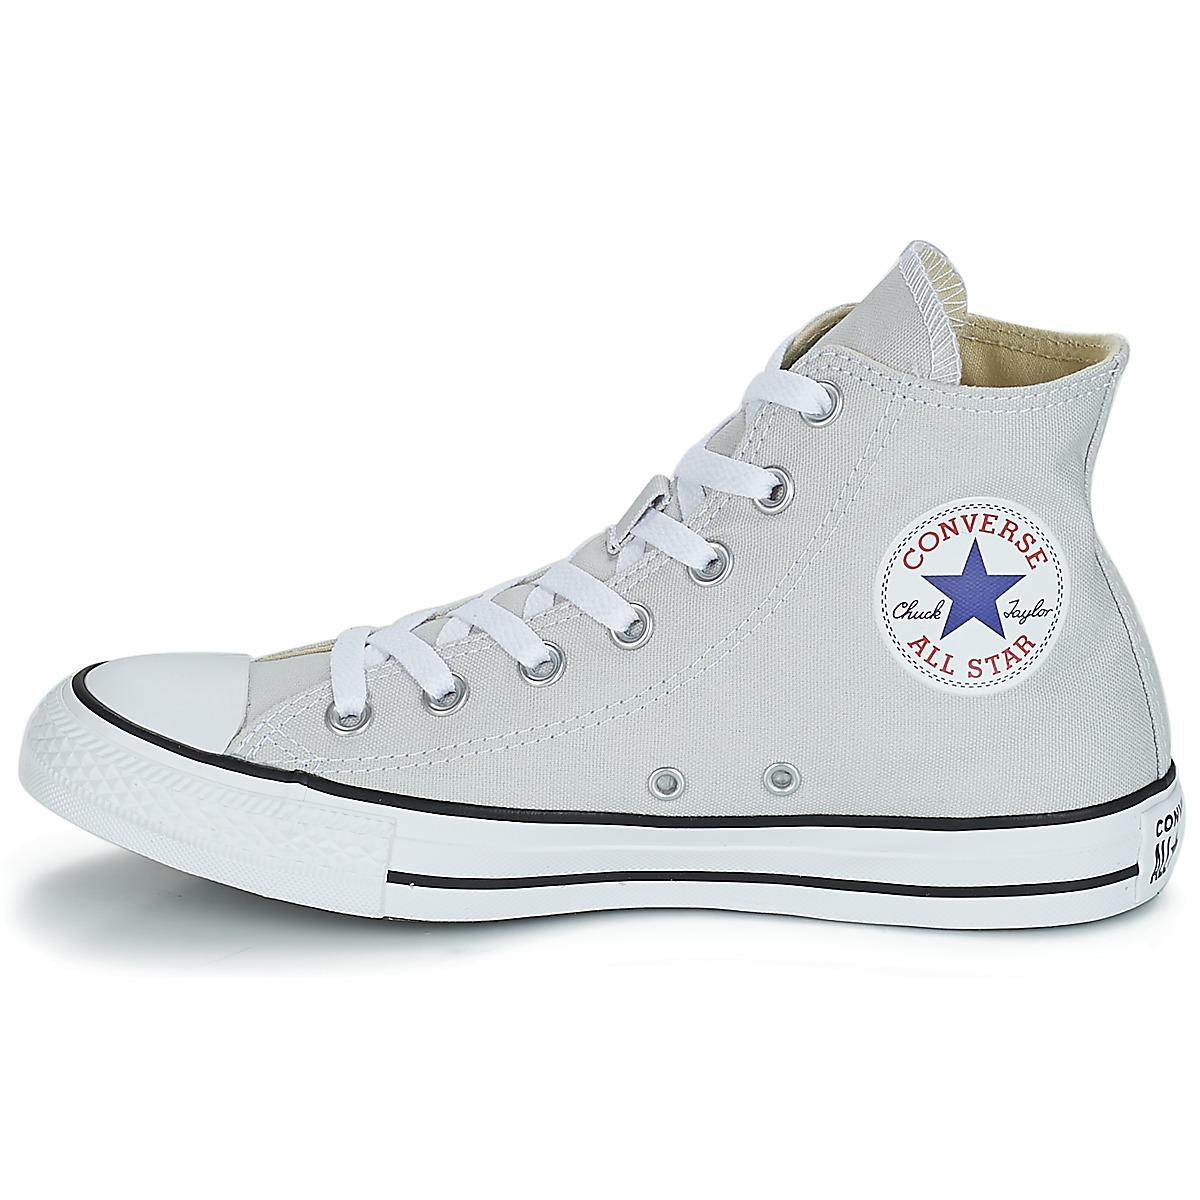 Converse Chuck Taylor All Star Hi Shoes (high-top Trainers) in Grey (Grey)